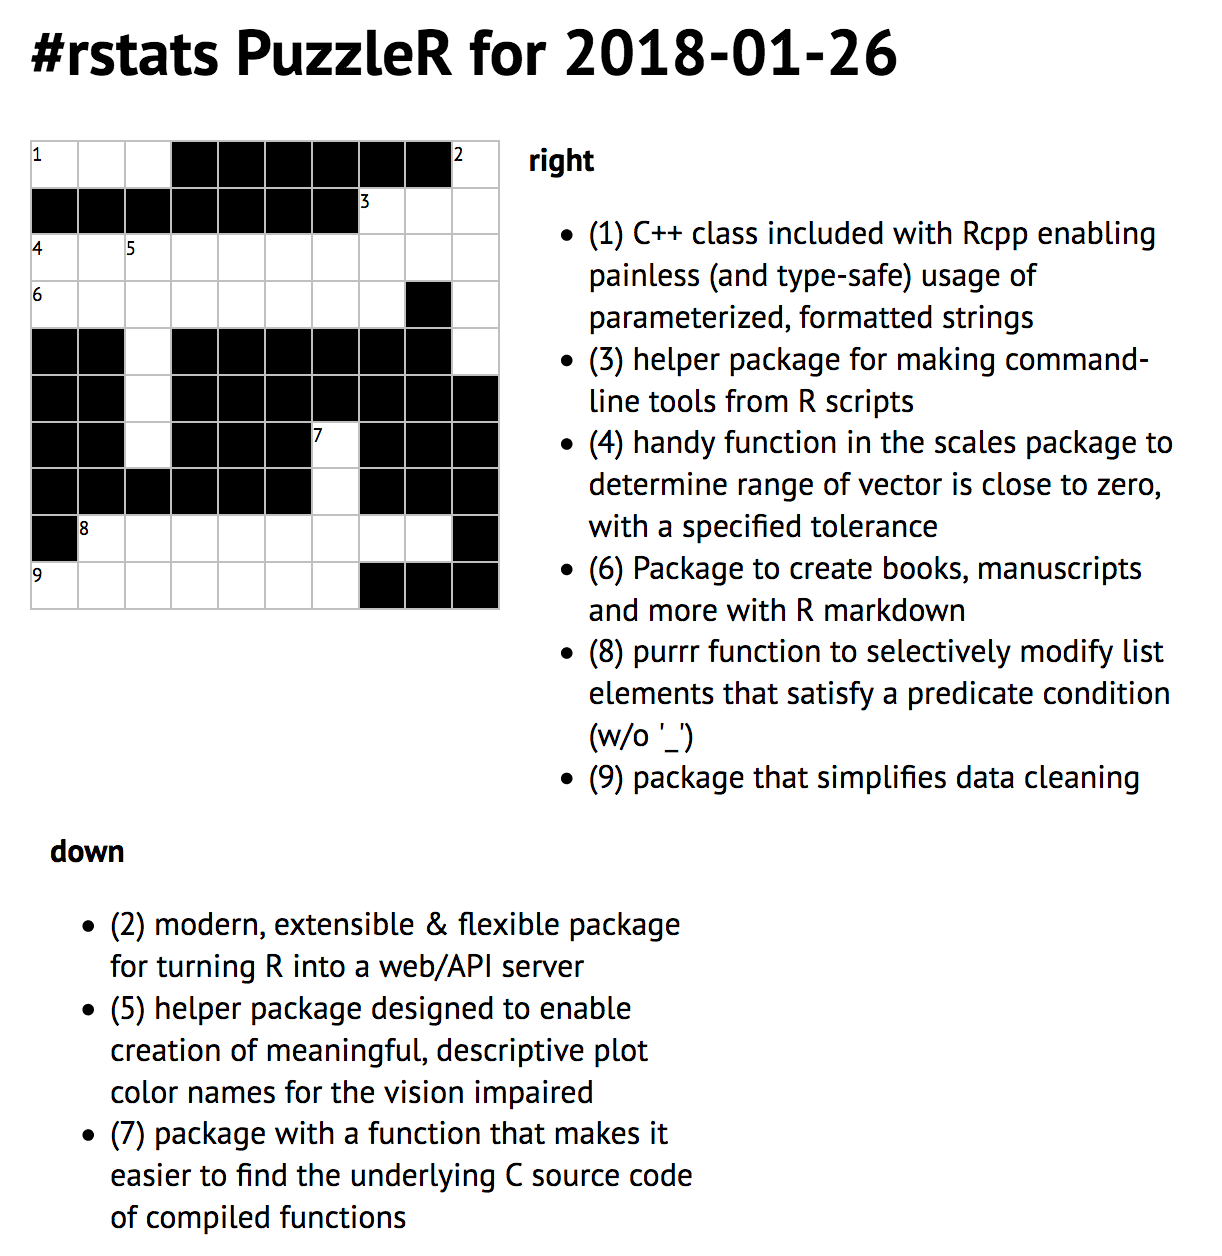 The Friday #rstats PuzzleR : 2018-01-26